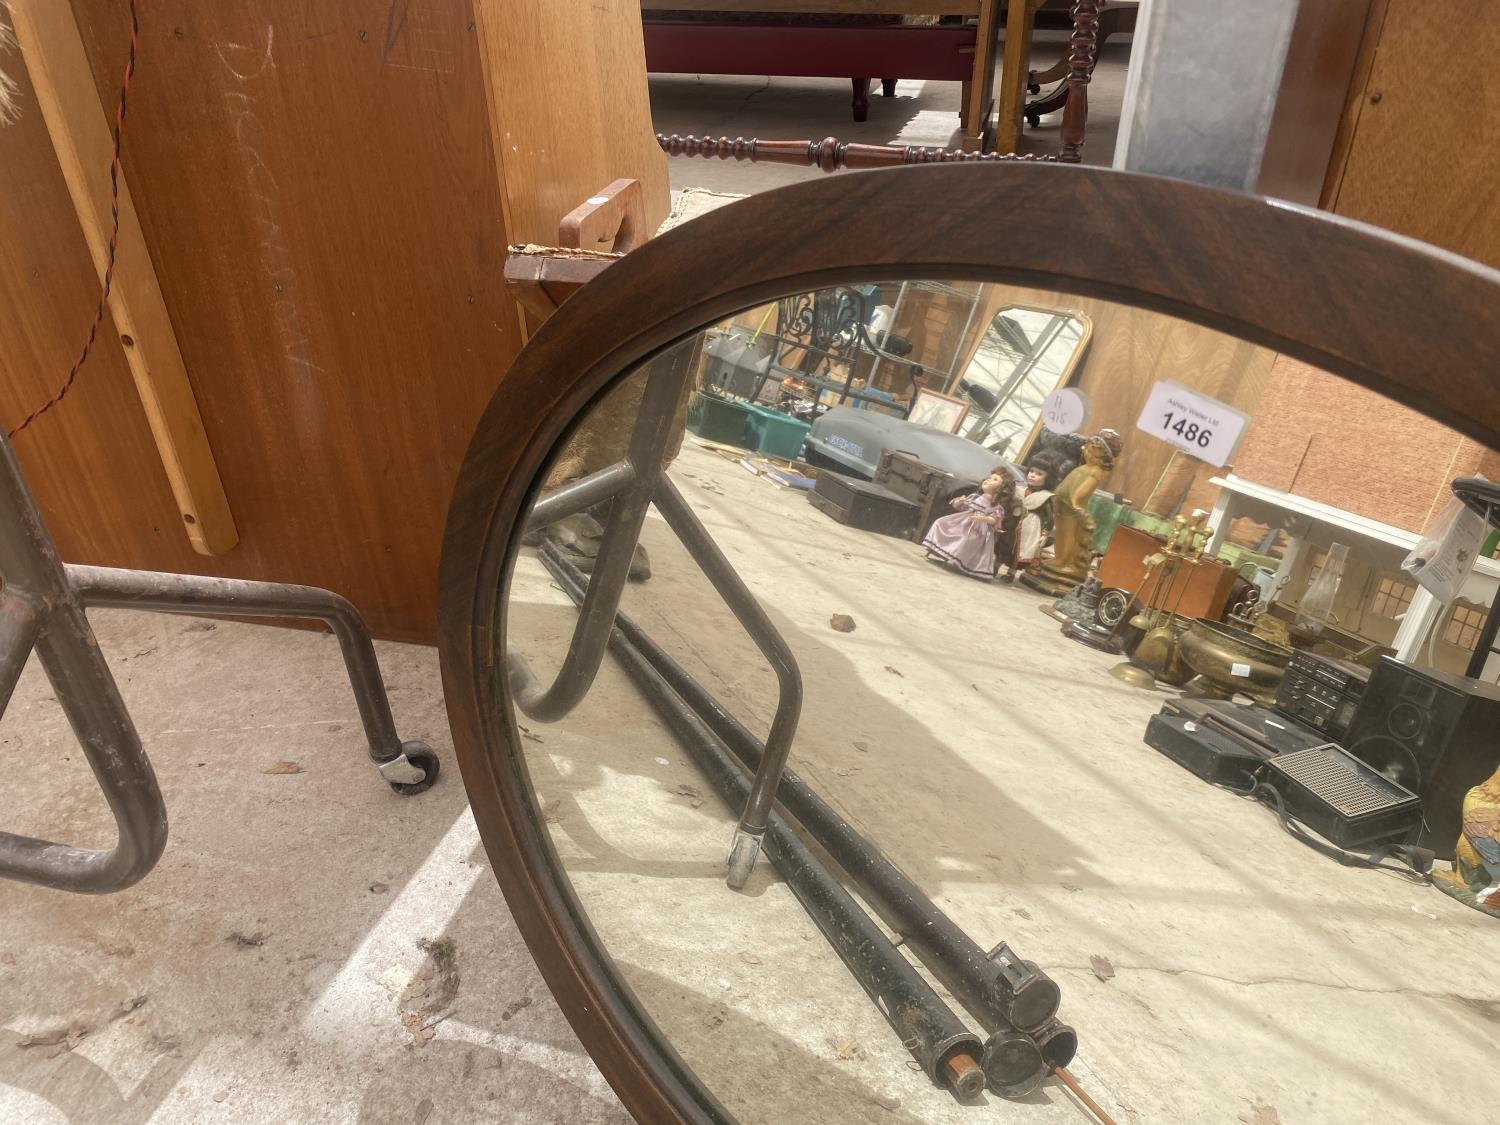 A WOODEN FRAMED OVAL MIRROR - Image 3 of 3